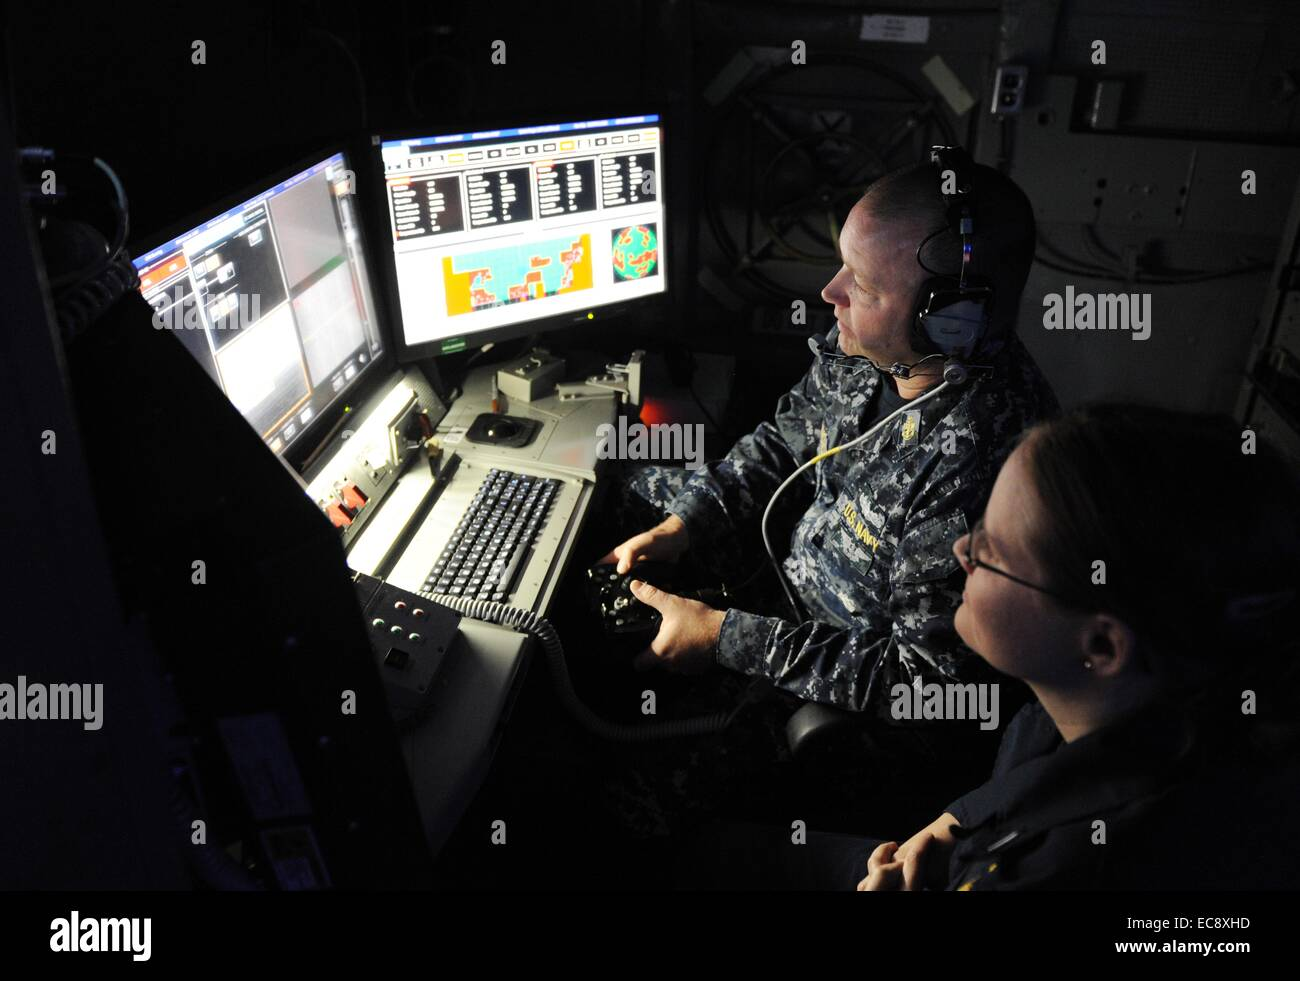 US Navy sailors operate the newly deployed LaWS, Laser Weapon System aboard the Austin-class amphibious transport - Stock Image